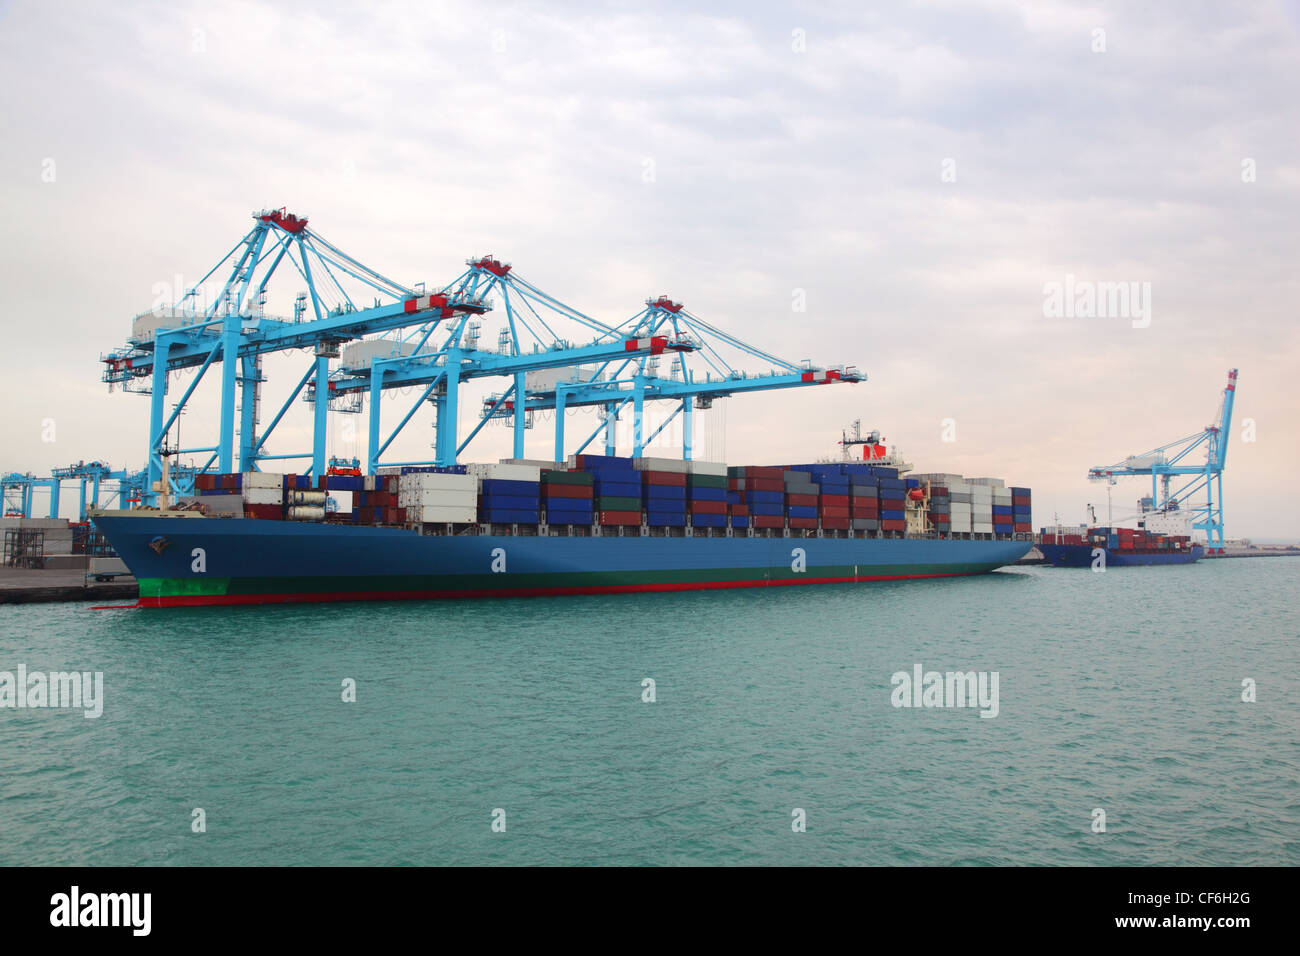 Big cargo boat and small barge docked to industrial port with blue cranes - Stock Image